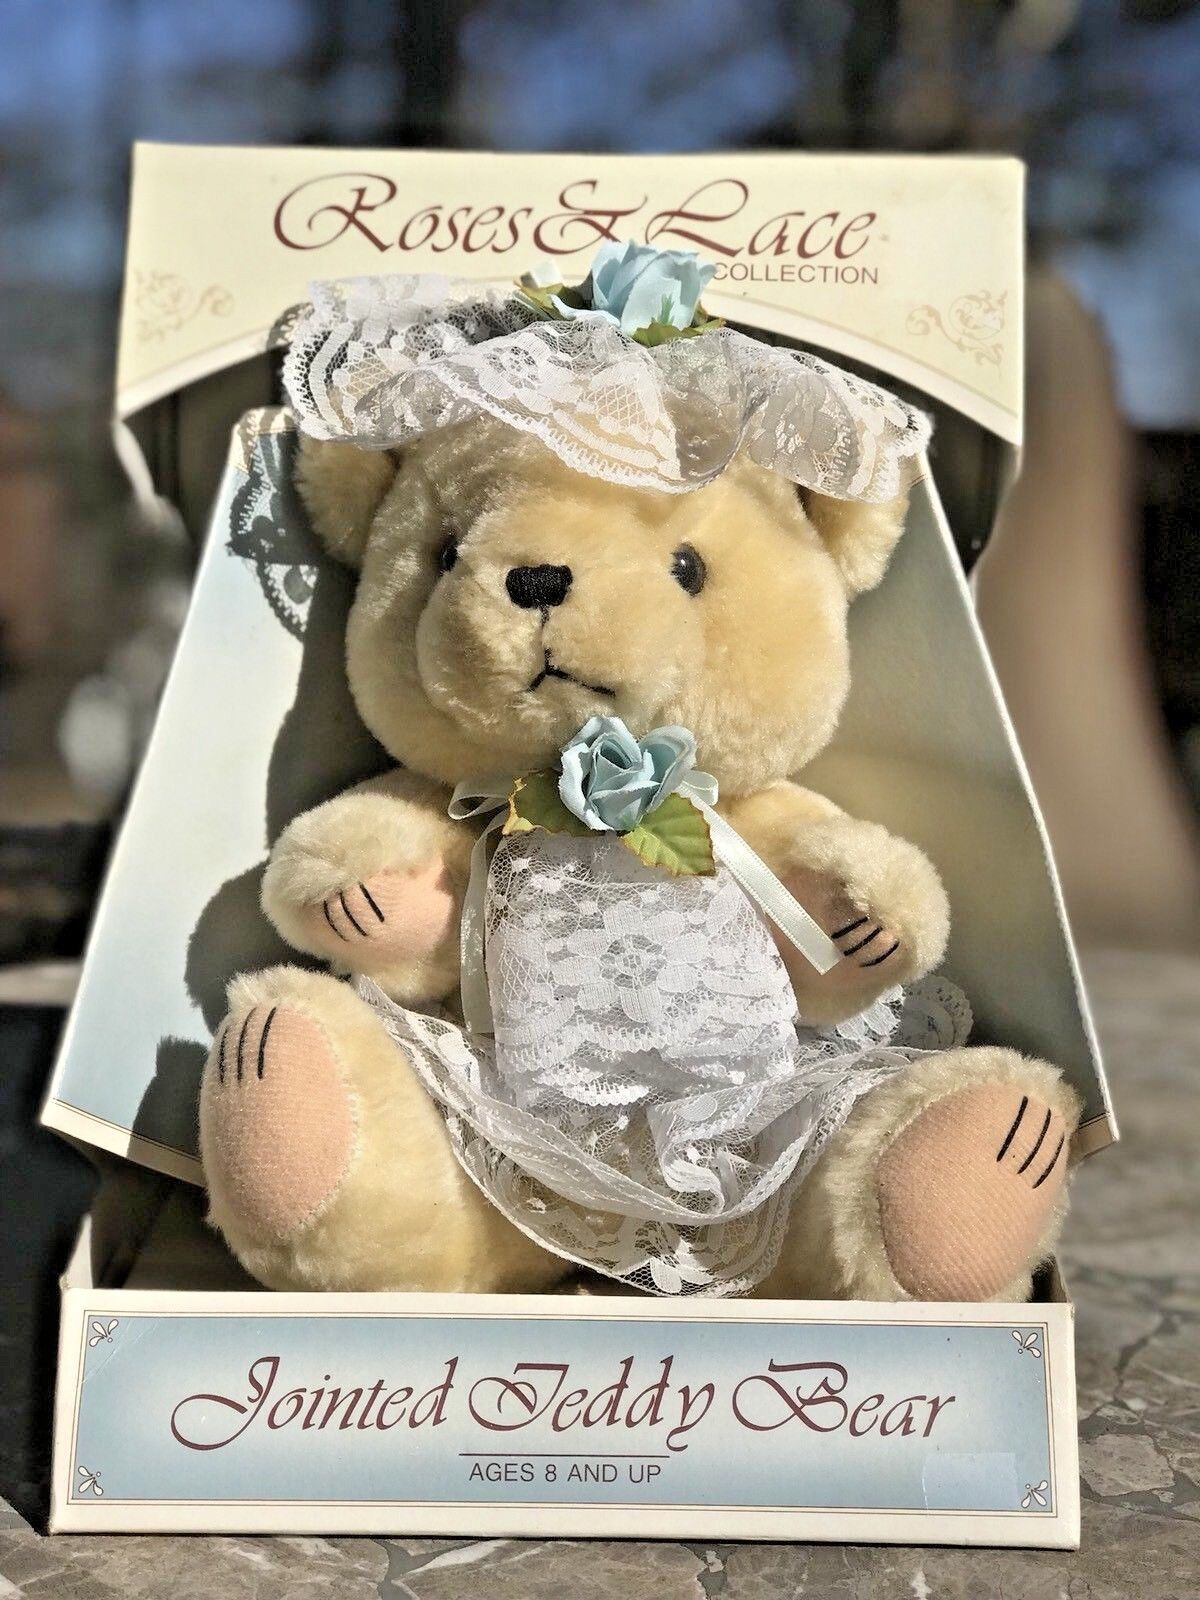 Vintage rosaS & LACE COLLECTION Teddy Bear with Lace-jointedSPECIAL EDITION